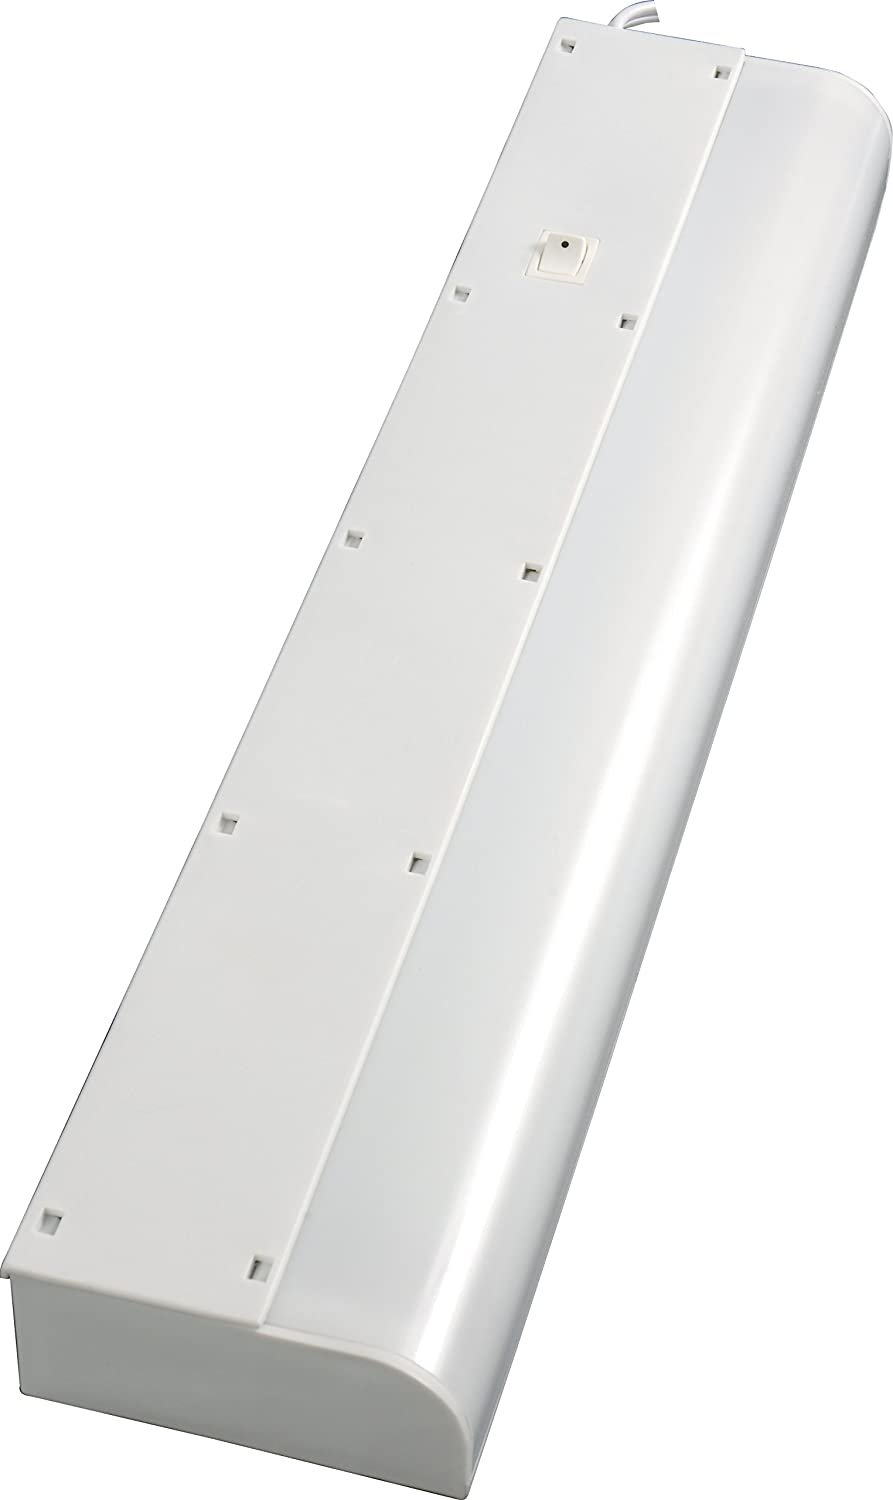 Amazon.com: GE 16466 Basic Fluorescent Light Fixture, 18-Inch, Plug ...